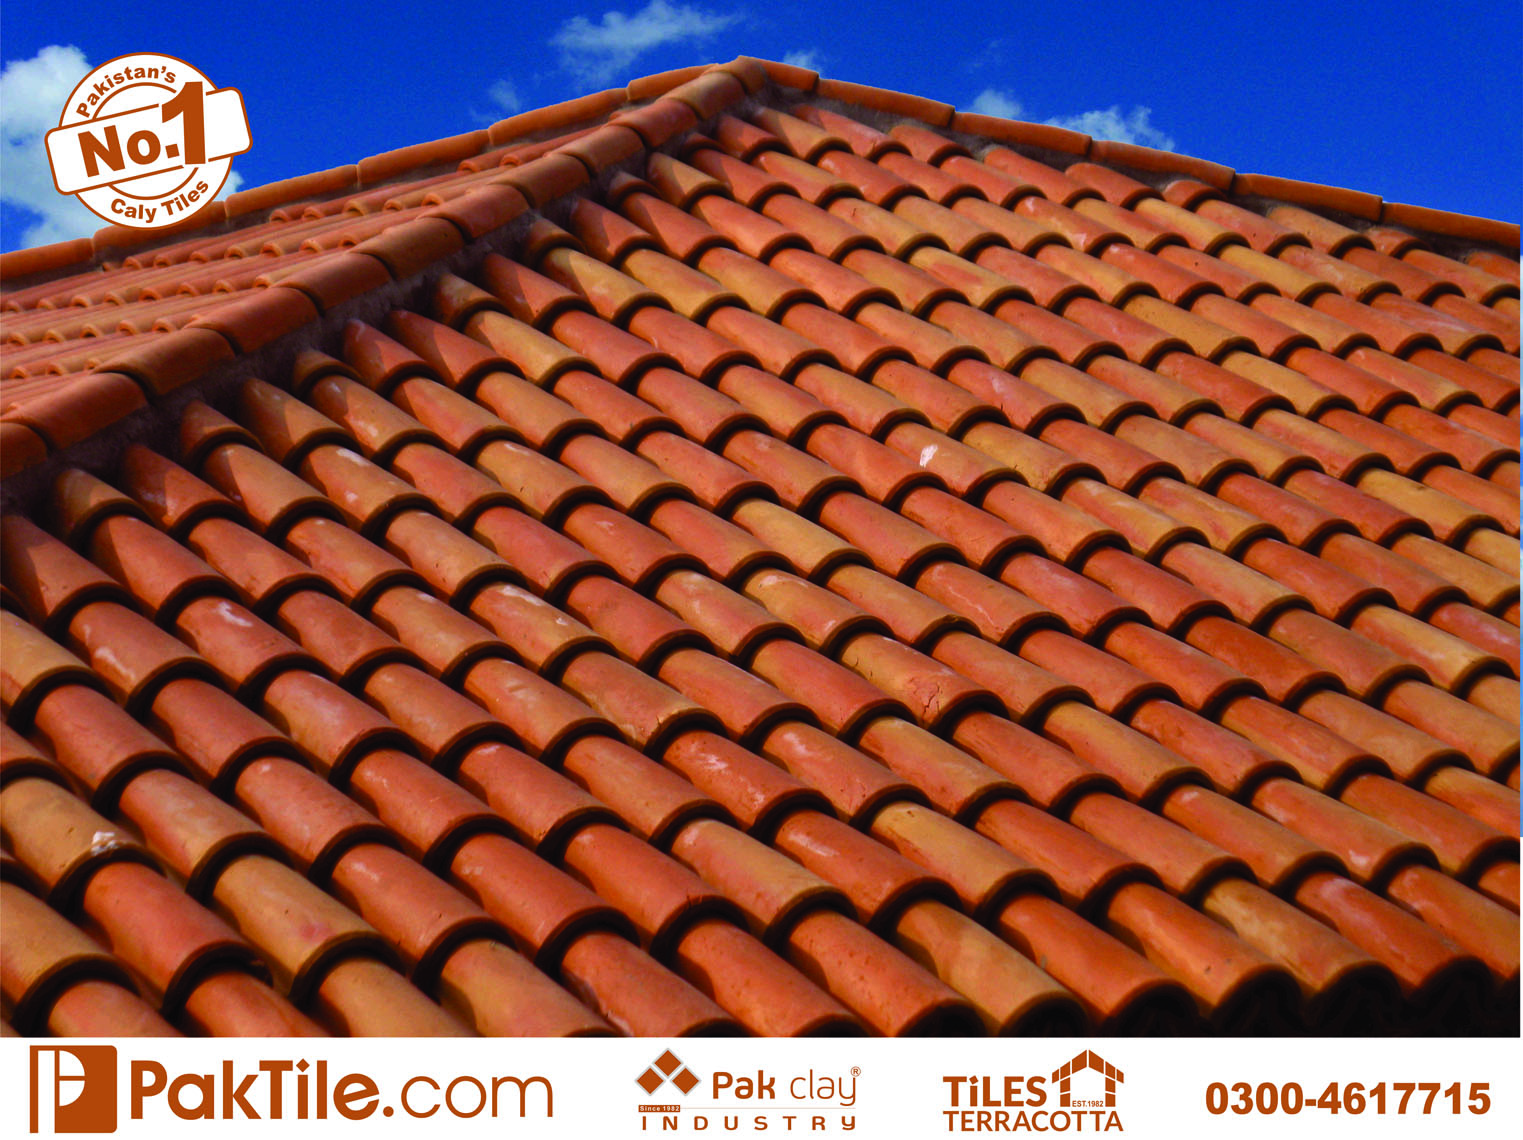 18 Pak clay thermal heat insulation product designed iranian roof khaprail tiles in karachi images